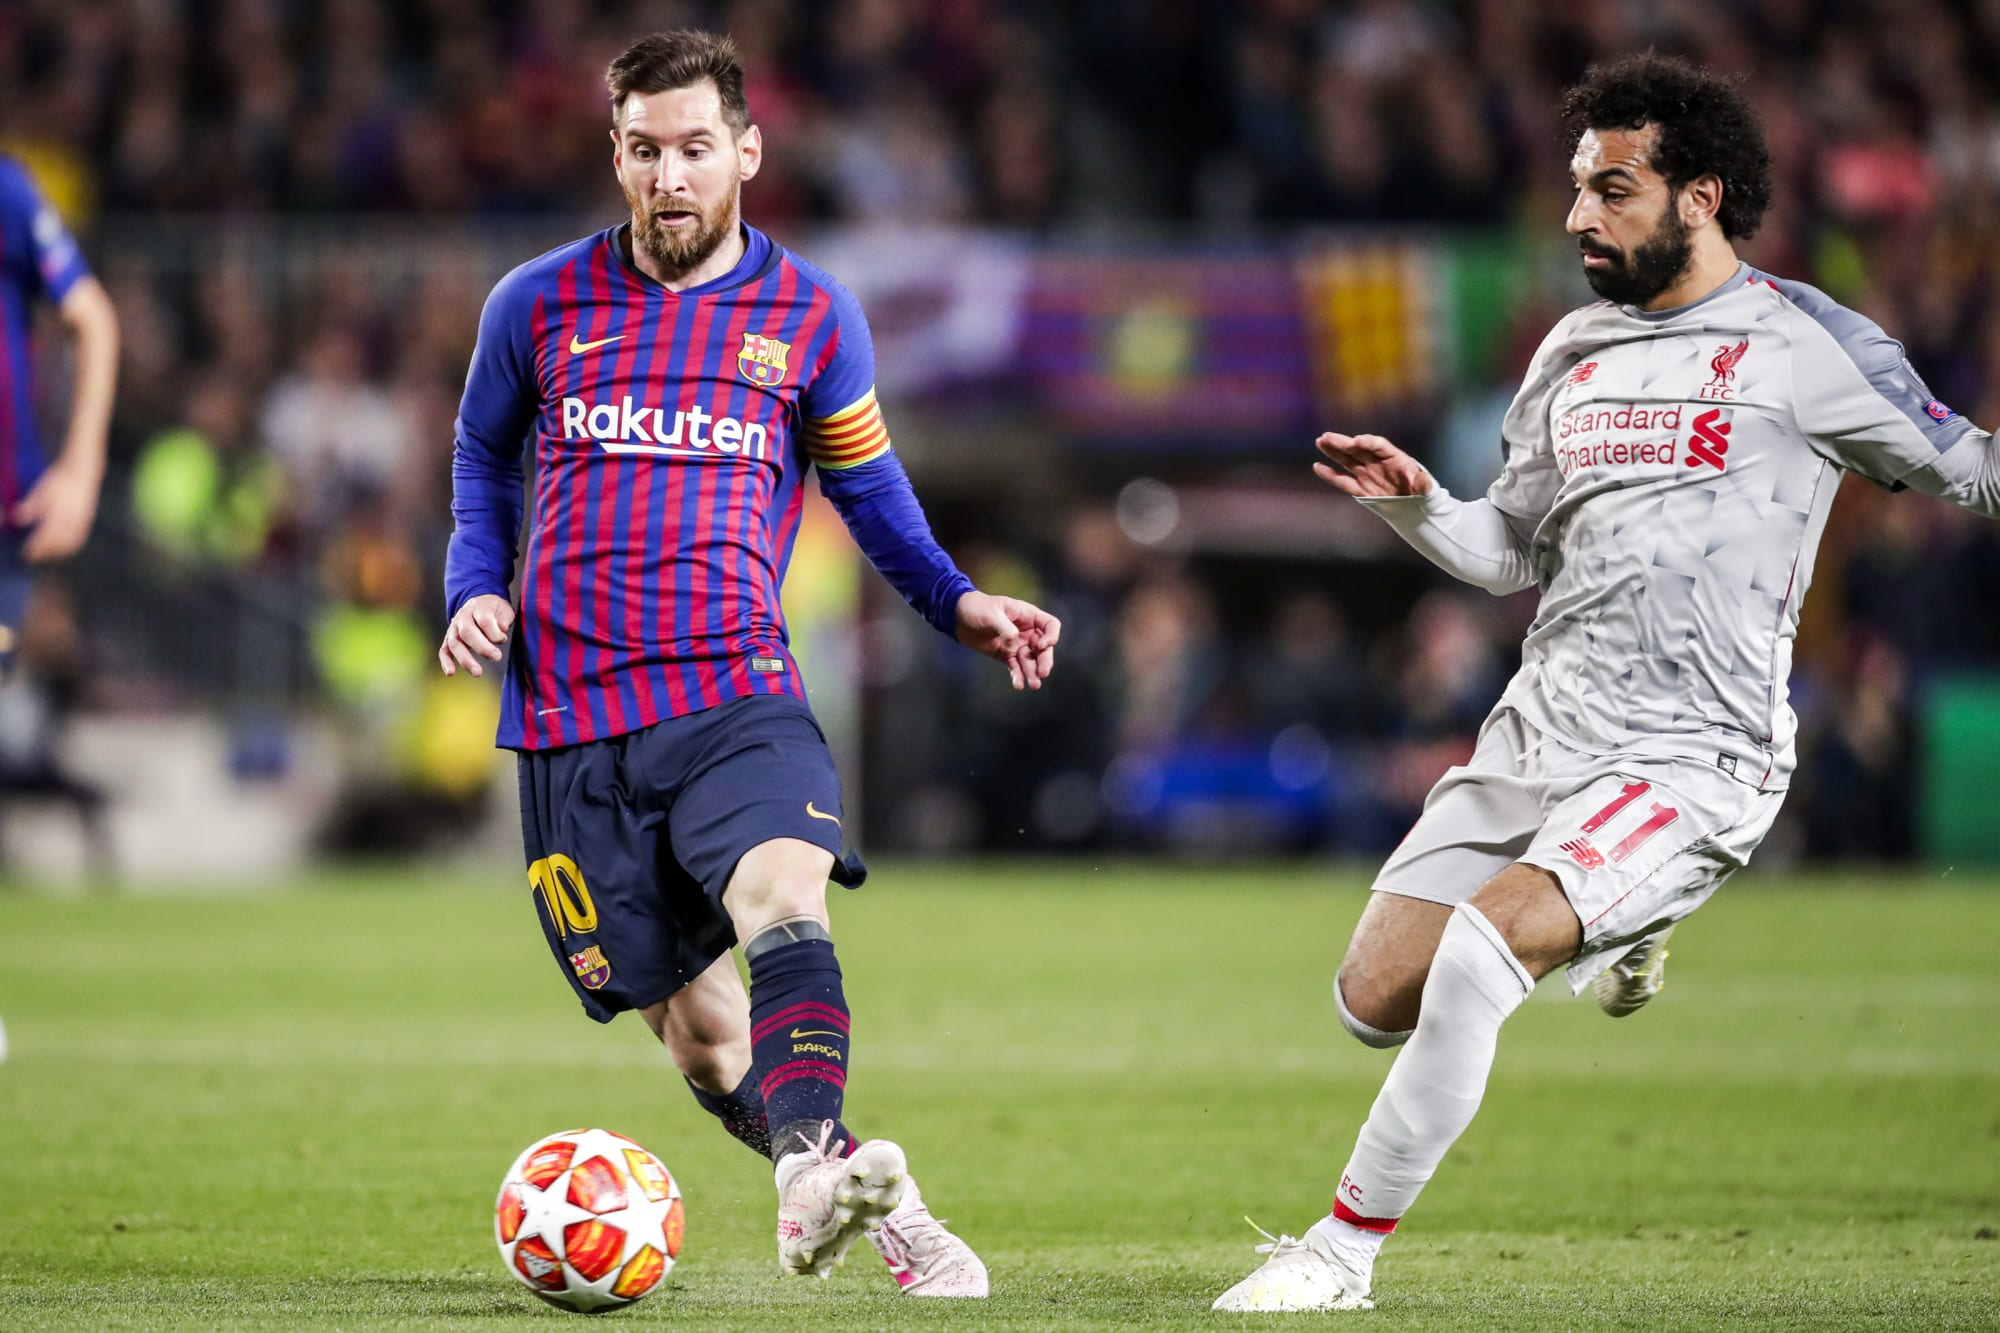 How Lionel Messi inspired Liverpool's Mohamed Salah